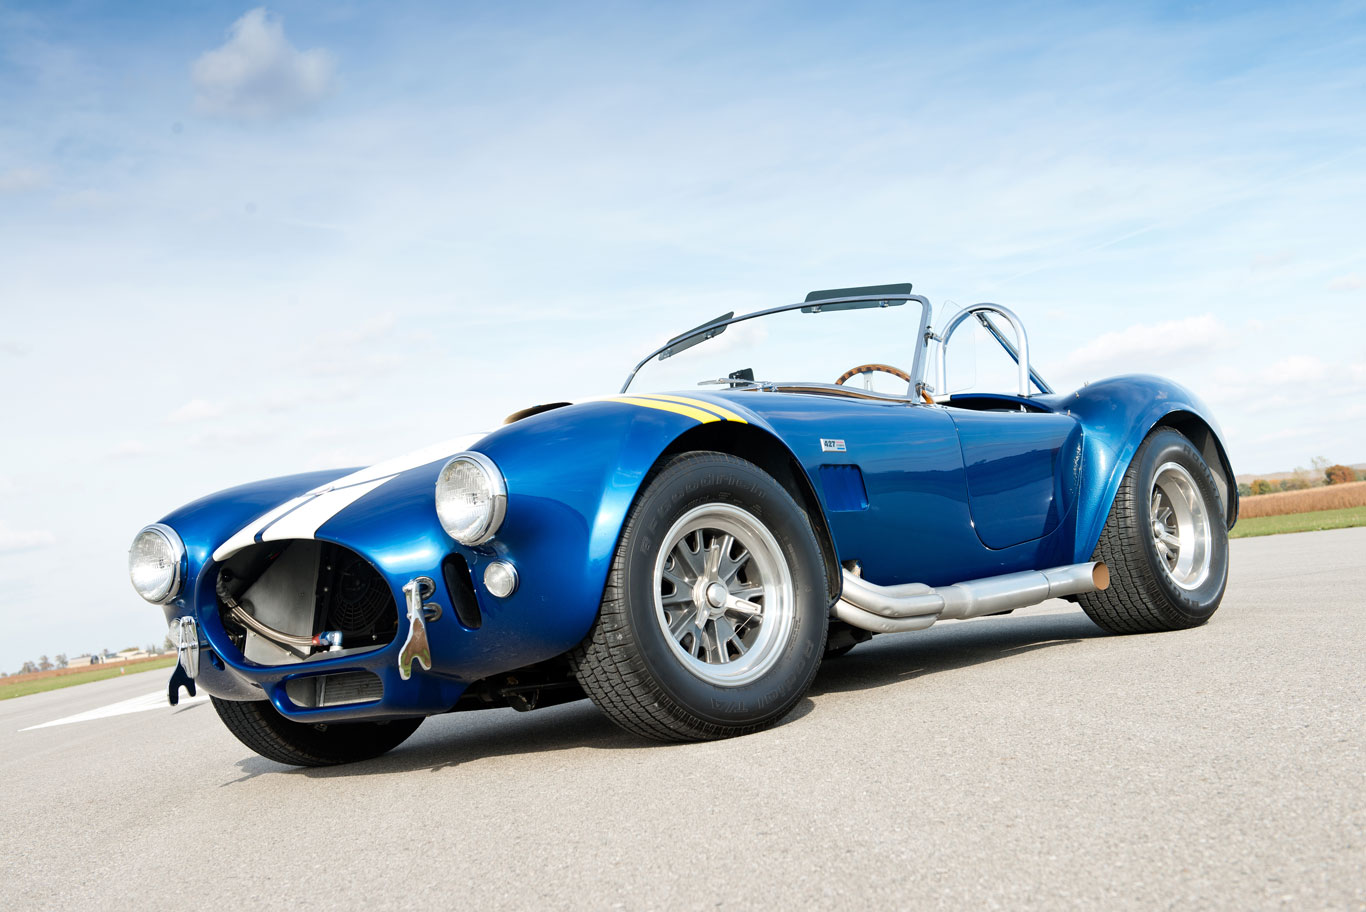 Read more about the 1966 shelby cobra 427 s c